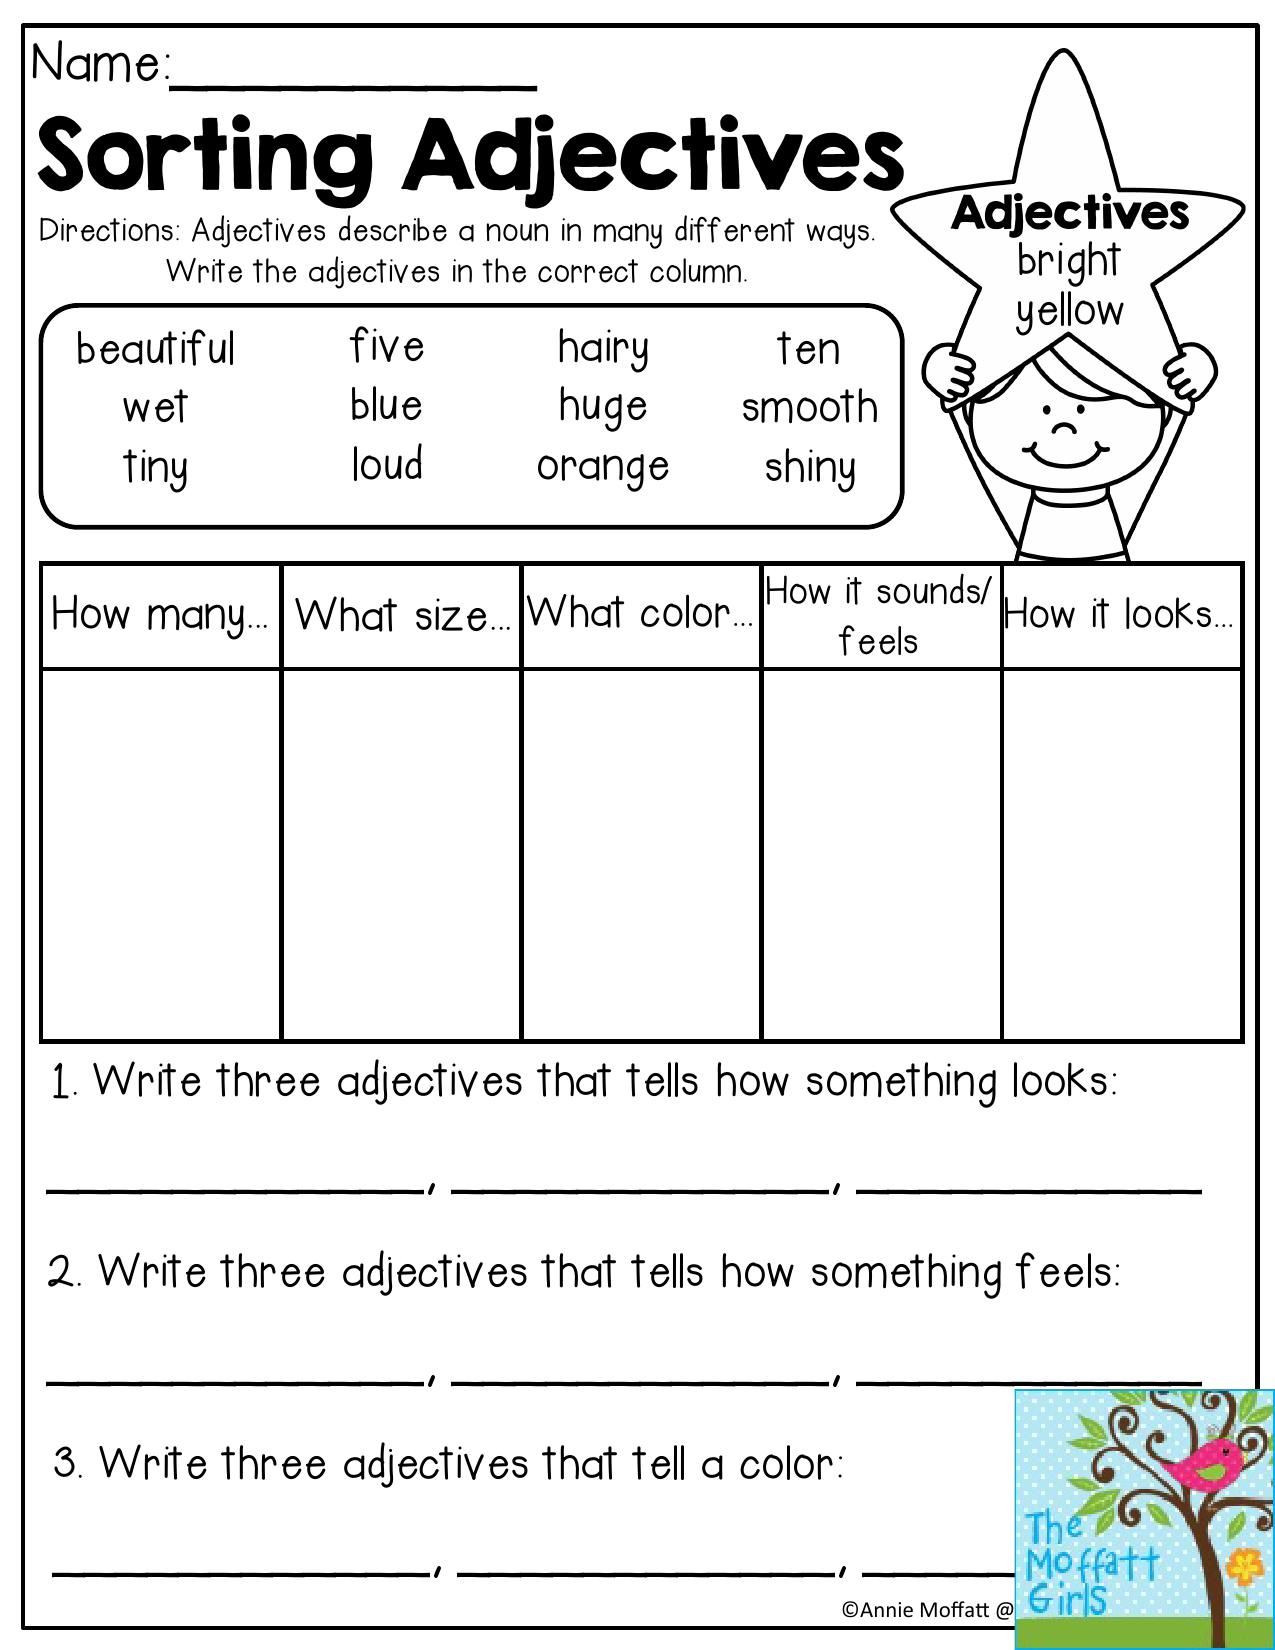 Adjectives Worksheets for Grade 1 sorting Adjectives Adjectives Describe A Noun In Many